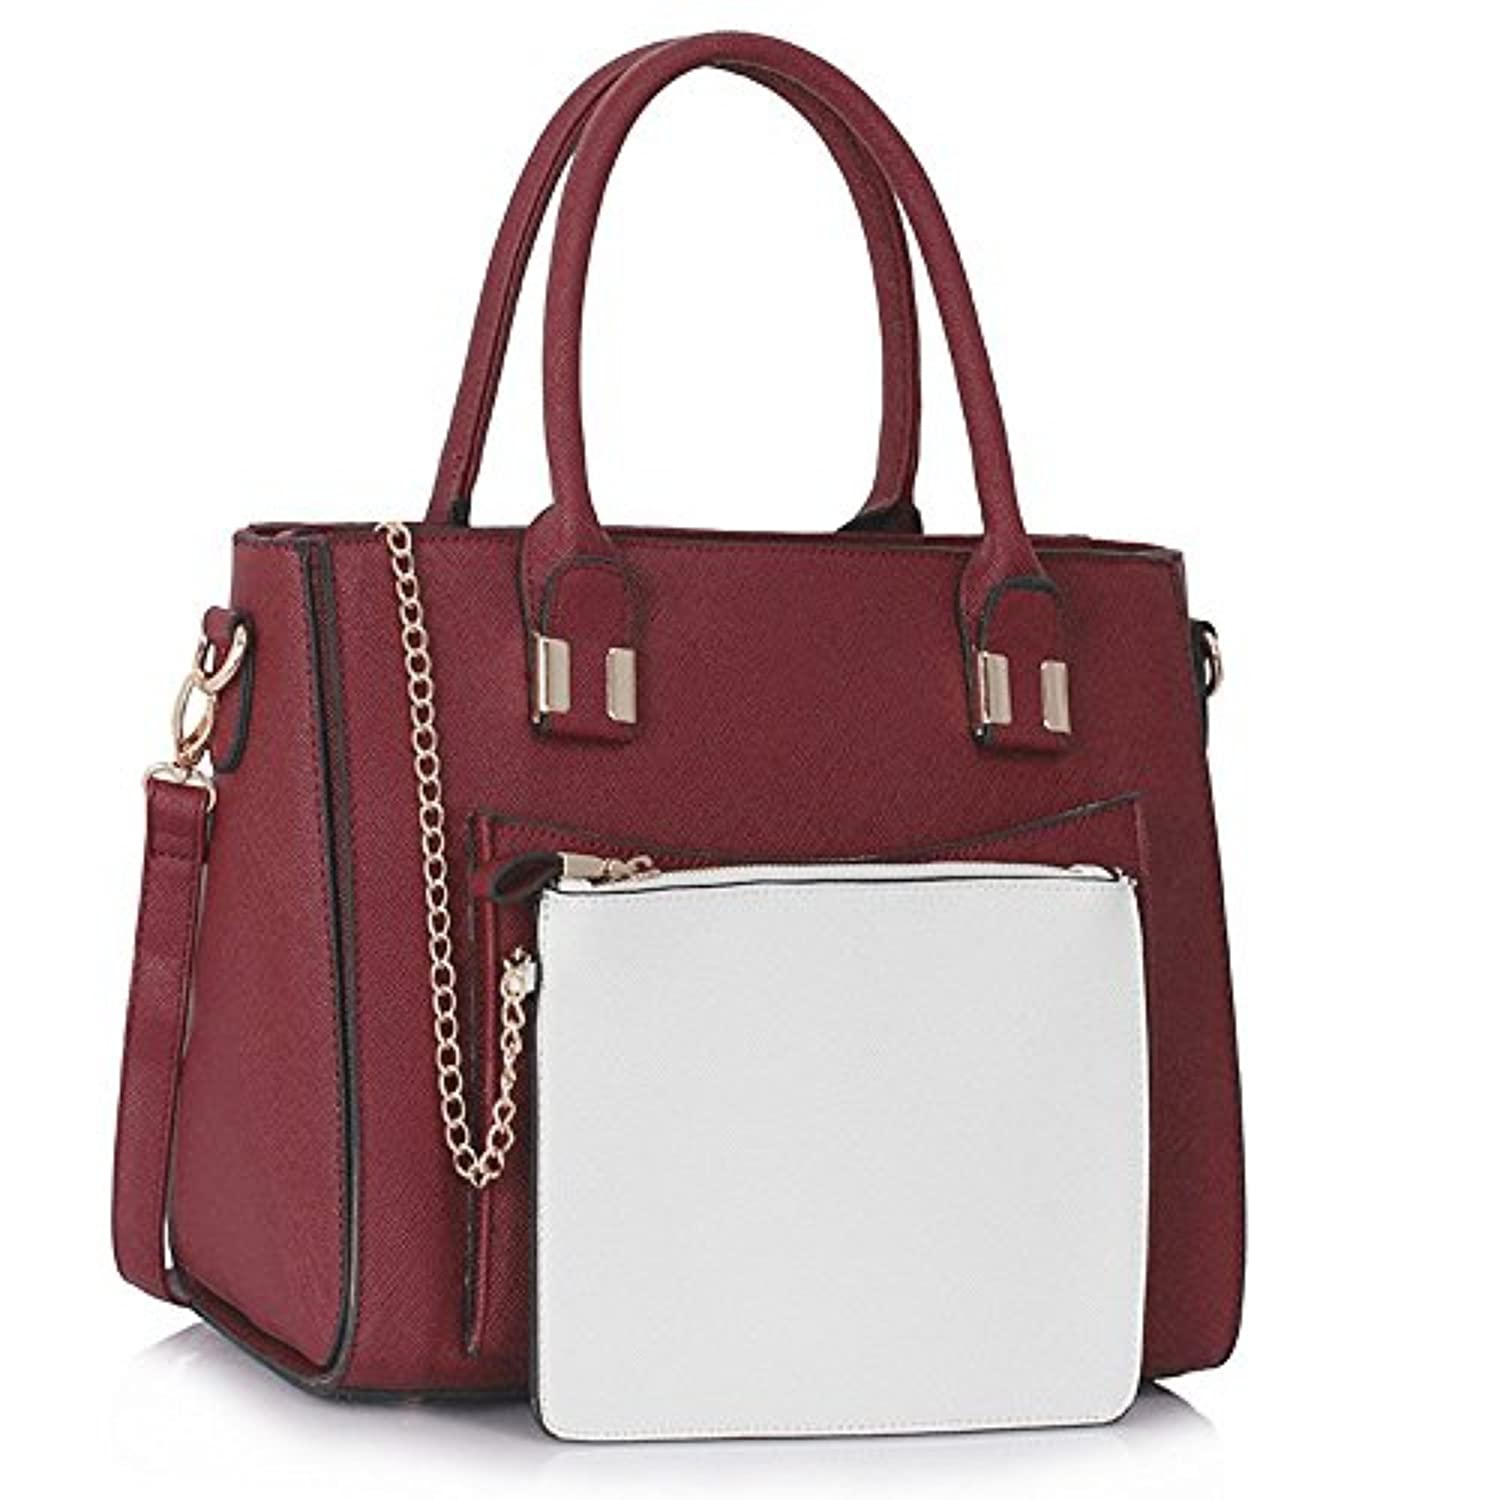 94c8896cd3 LeahWard Women s Celeb Style Tote Bags Ladies Handbags With Removable Pouch  Bag 313 (Purple Burgundy)  Amazon.co.uk  Shoes   Bags